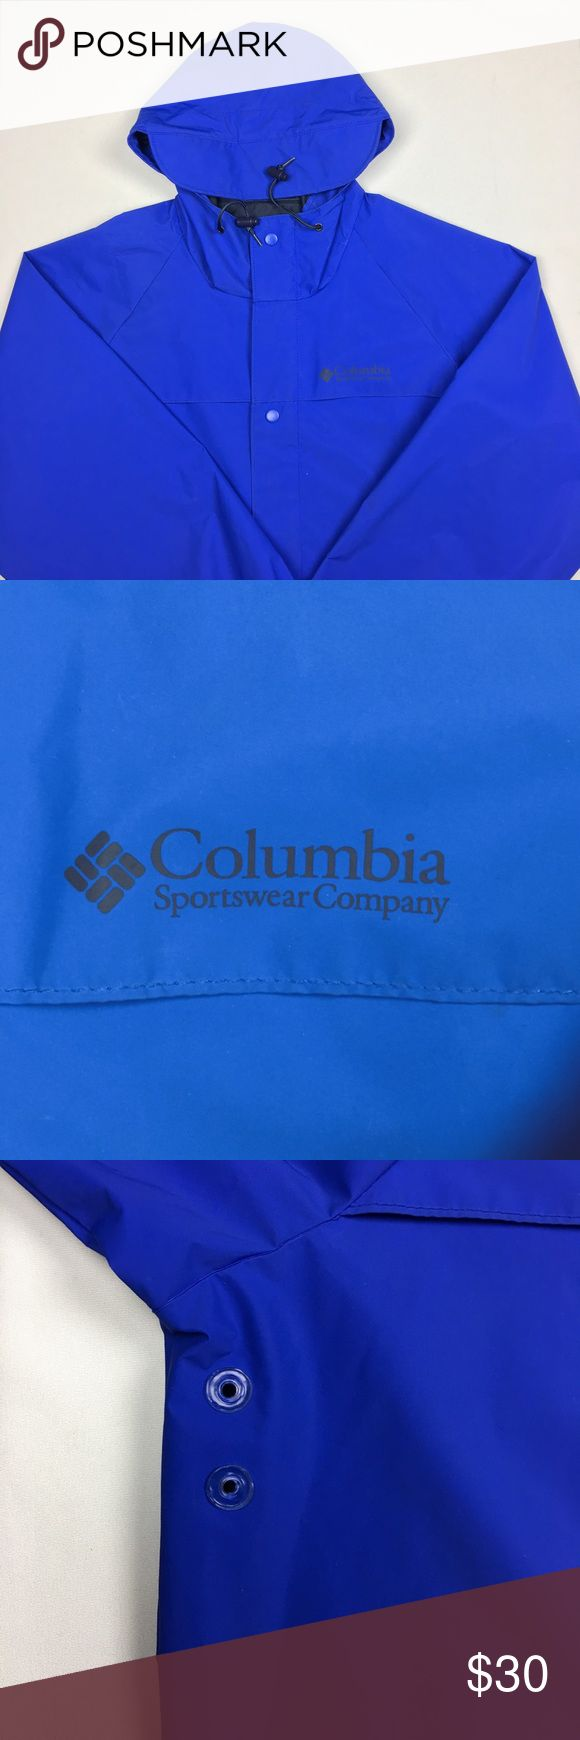 Columbia Men's Blue Raincoat Used in Excellent Condition/ No Trades/ No PayPal/ Smoke & Pet Free Home/ Offers welcome/ Please Ask Questions! Columbia Jackets & Coats Raincoats